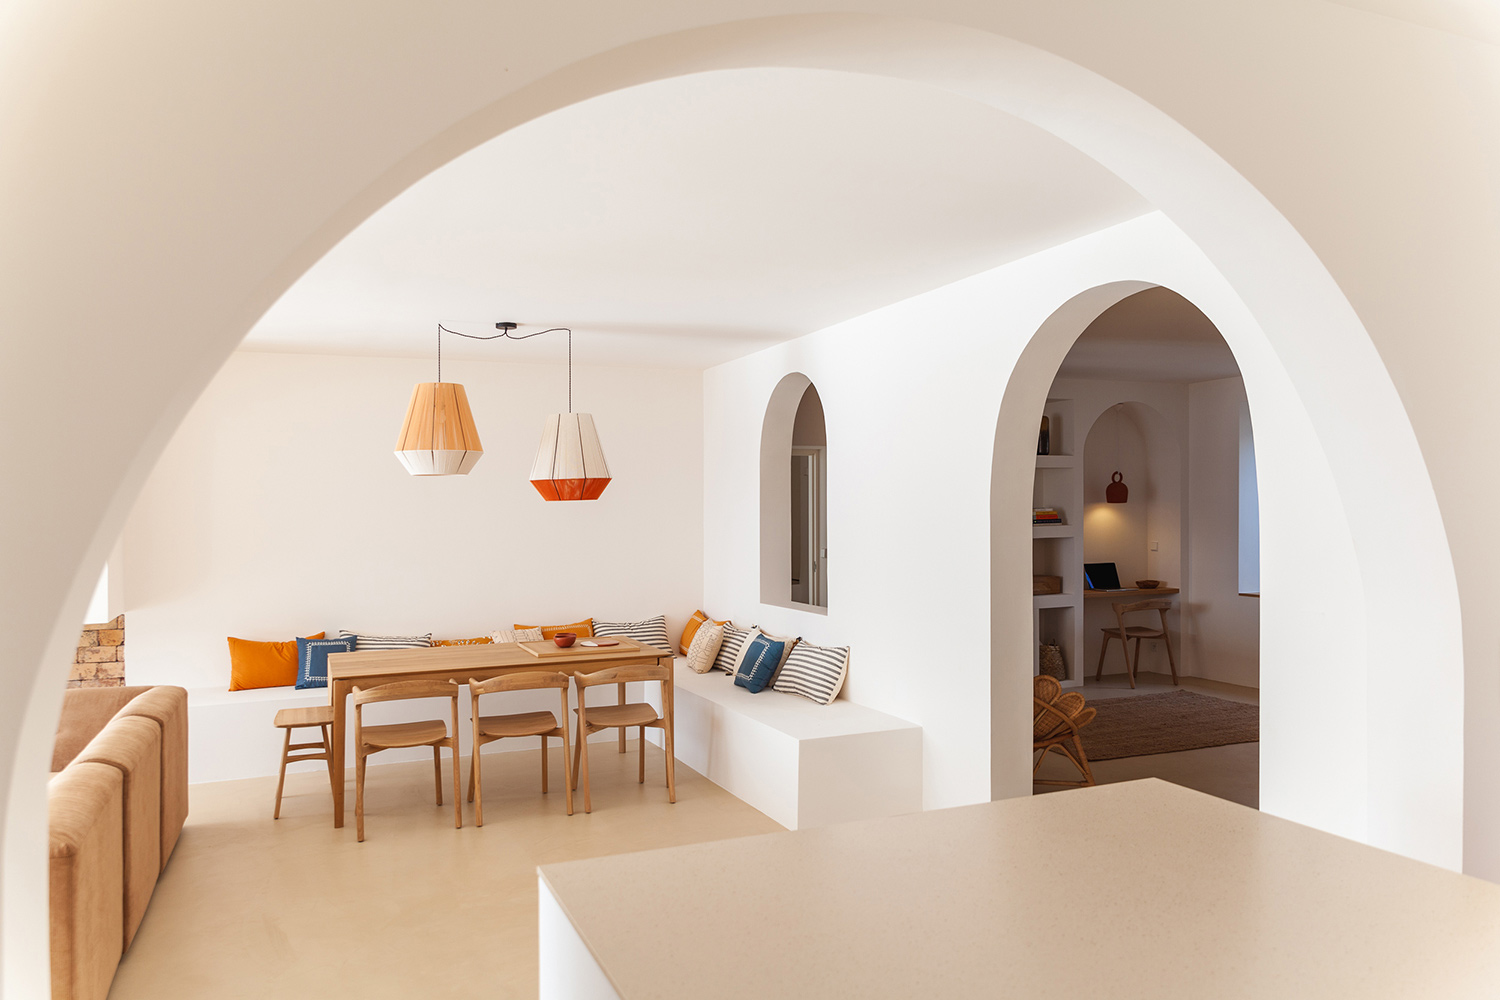 A Corsican beach house is given a new lease of life by architect Amelia Tavella